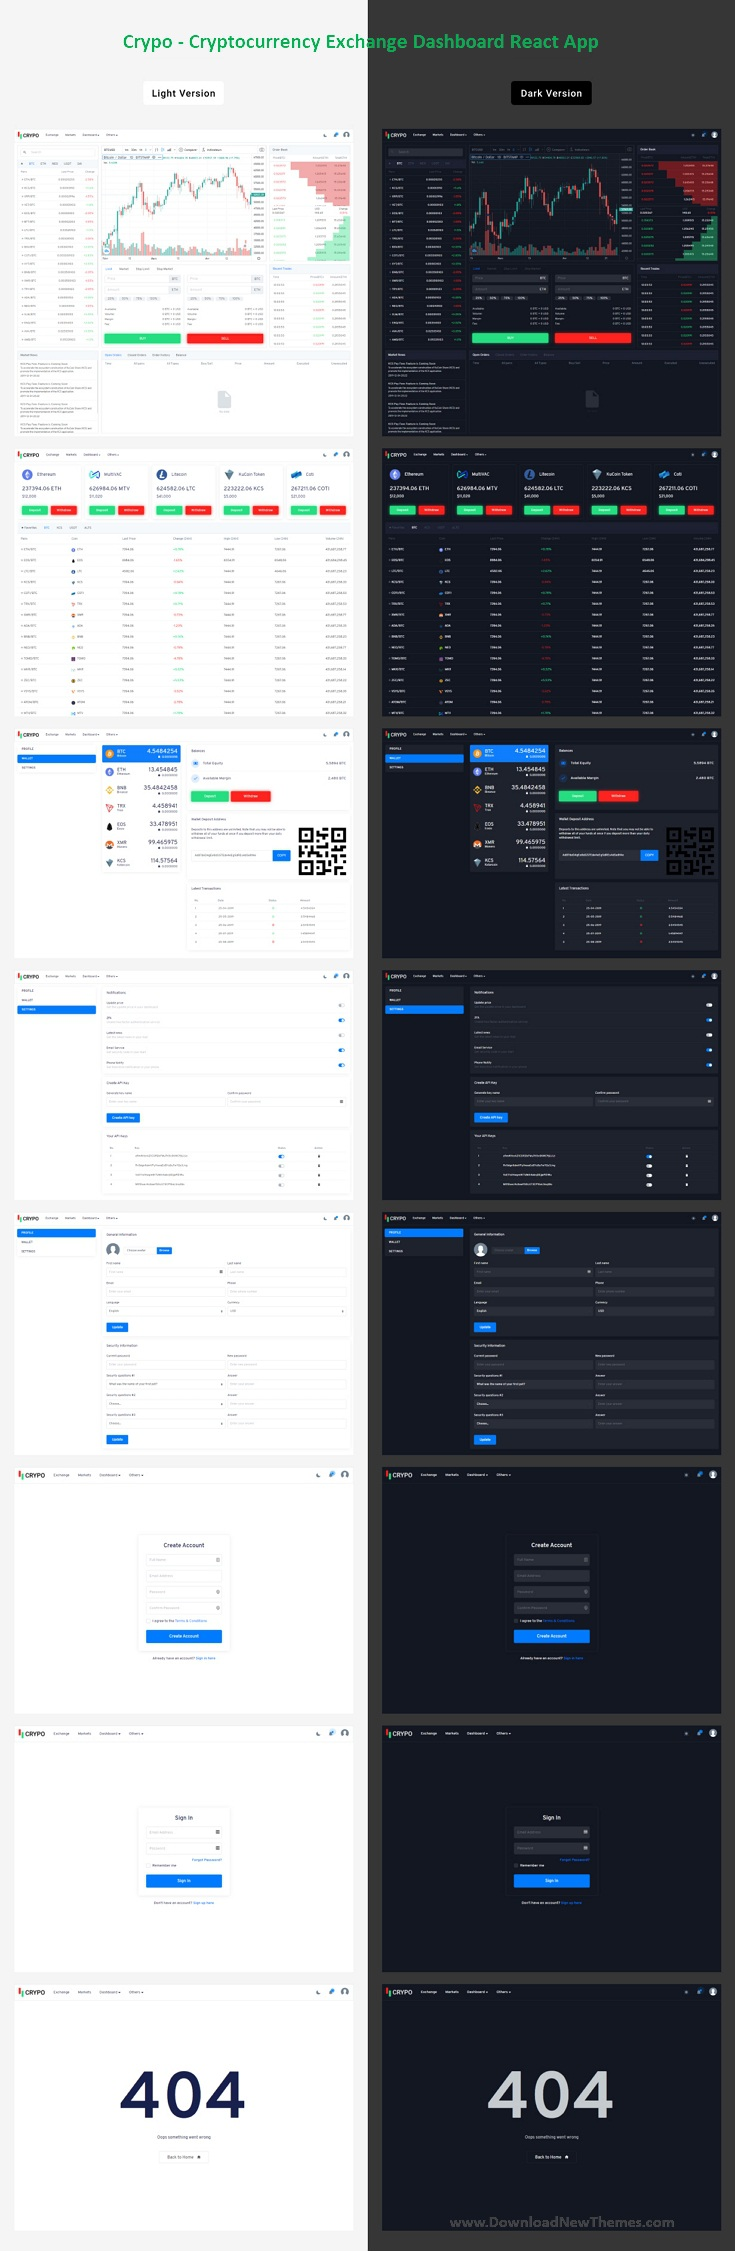 Cryptocurrency Exchange Dashboard React App